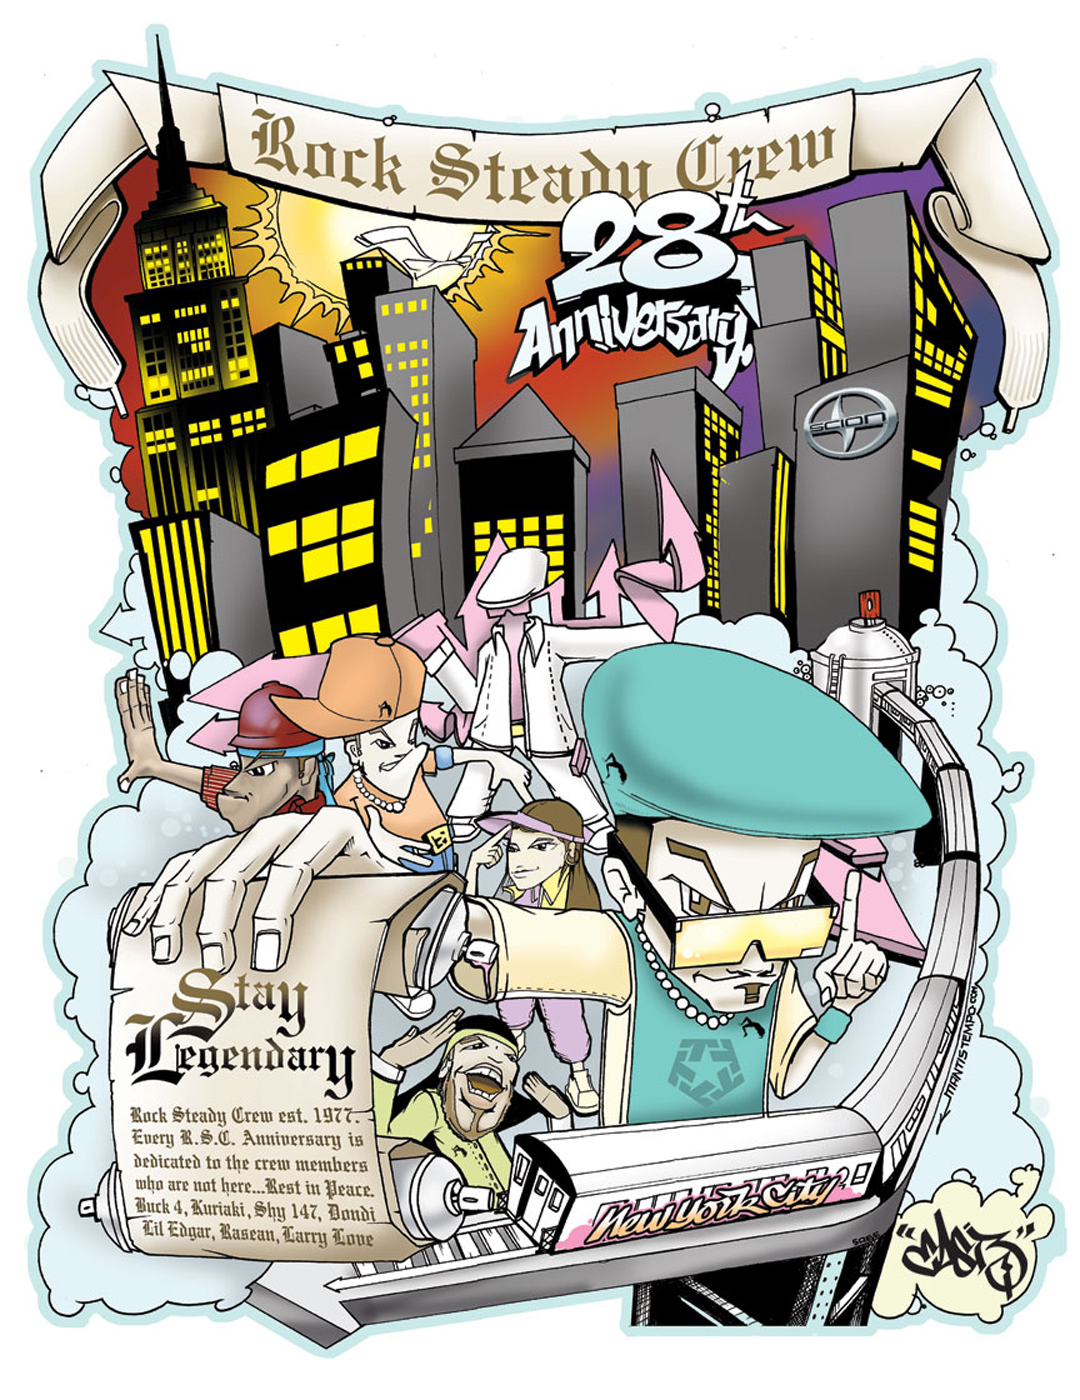 Rock Steady Crew 28th Anniversary art by East3